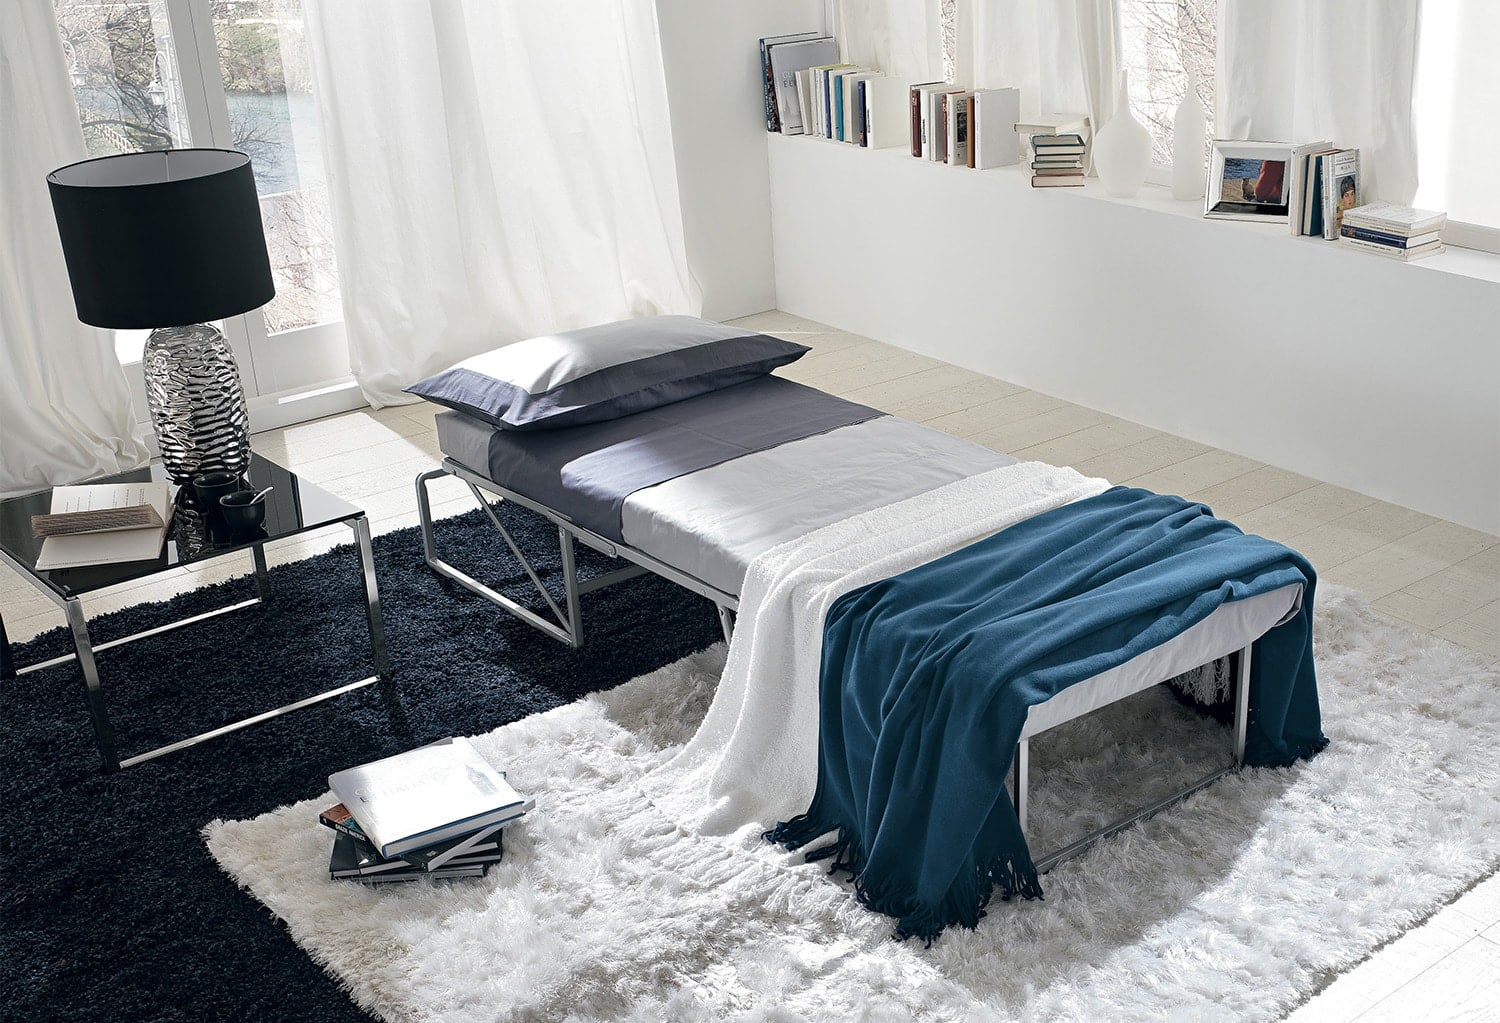 avis lit une place notre guide d achat. Black Bedroom Furniture Sets. Home Design Ideas